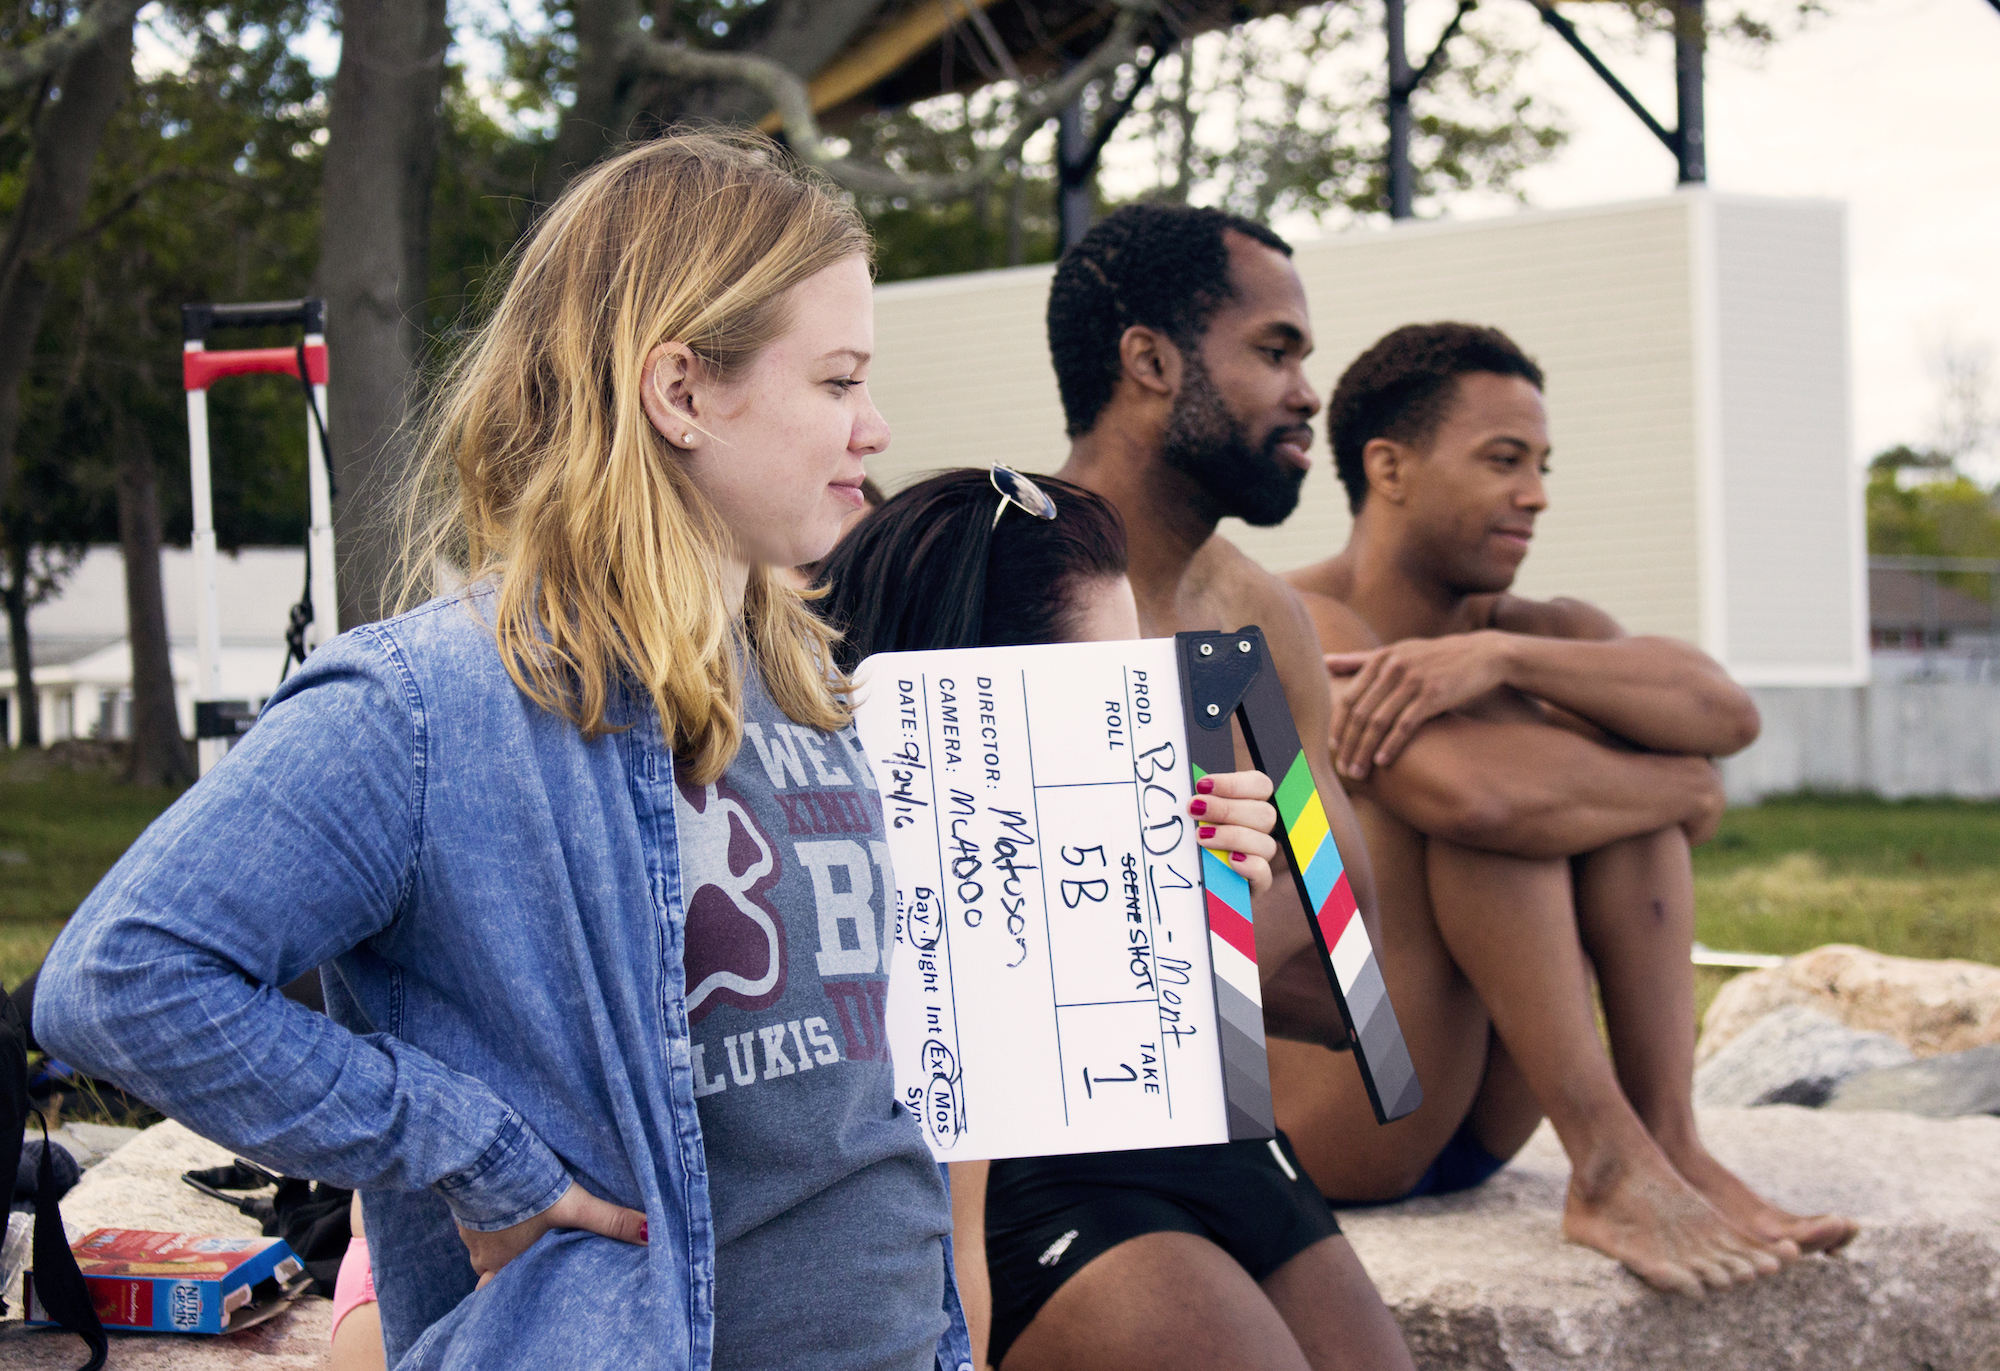 Production Assistant Paige Frankovich with Actors Kevin O. Peterson, Reggie Joseph and Sean Brown on set of Matuson's production of 'Fauxmercials' beach ads, September 2016.